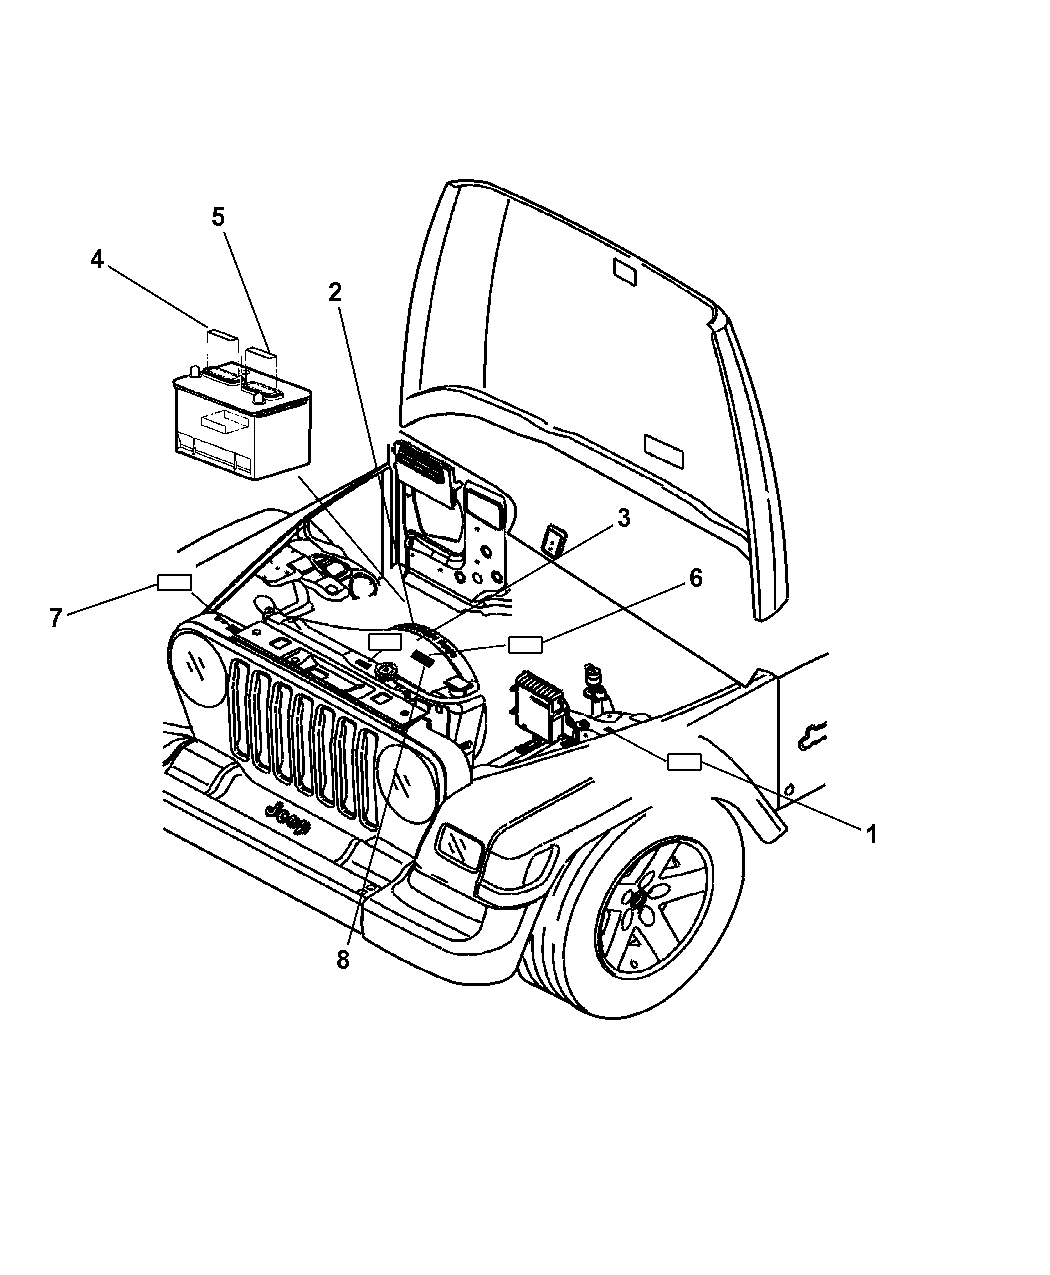 2007 jeep wrangler engine compartment